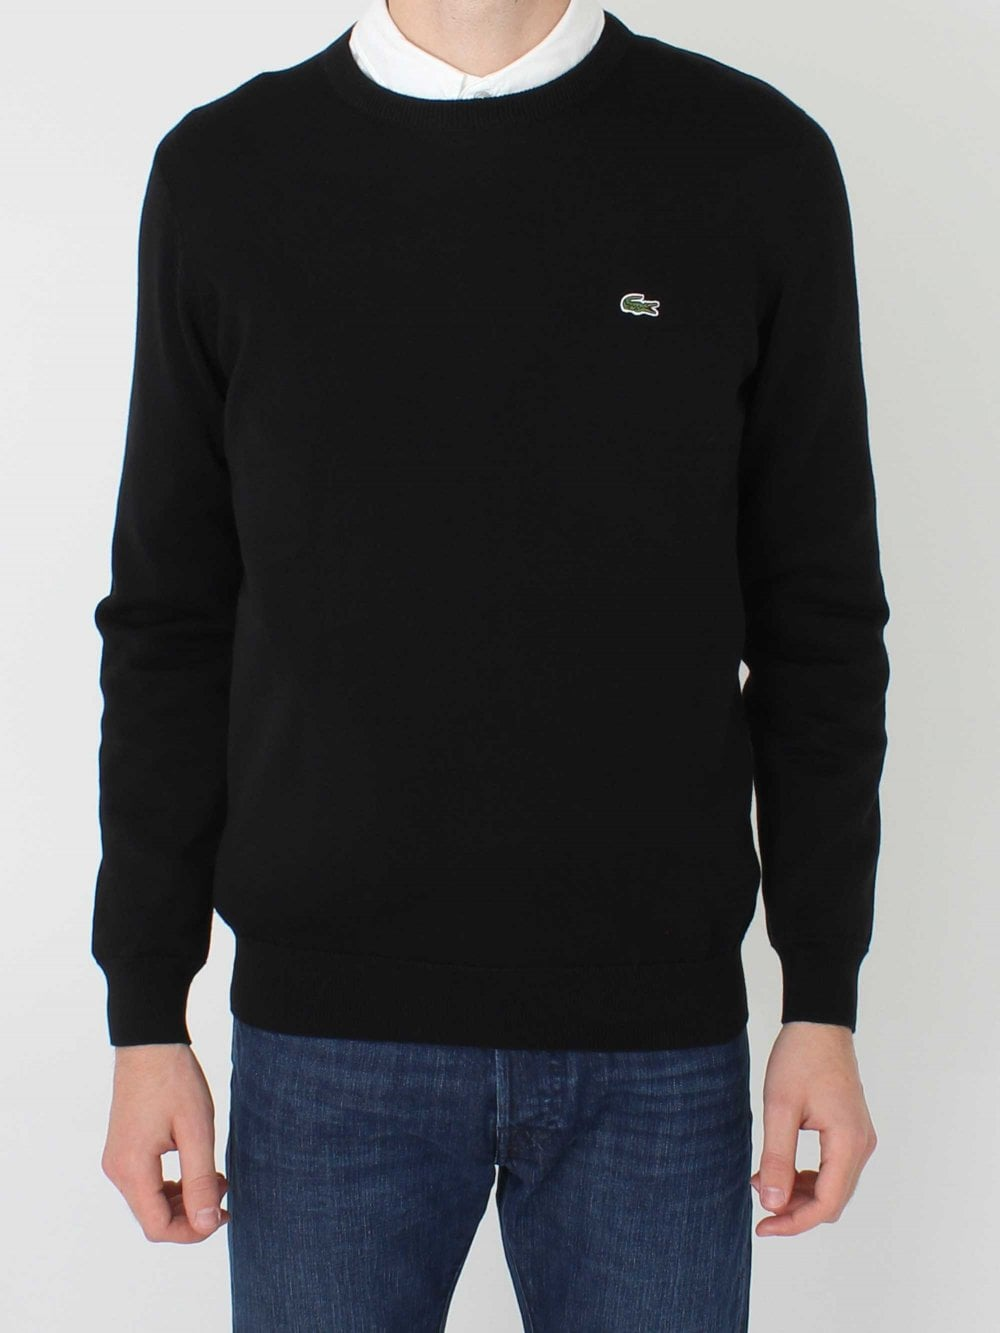 02782a9b3 Lacoste Crew Neck Logo Knit in Black/Flour   Northern Threads